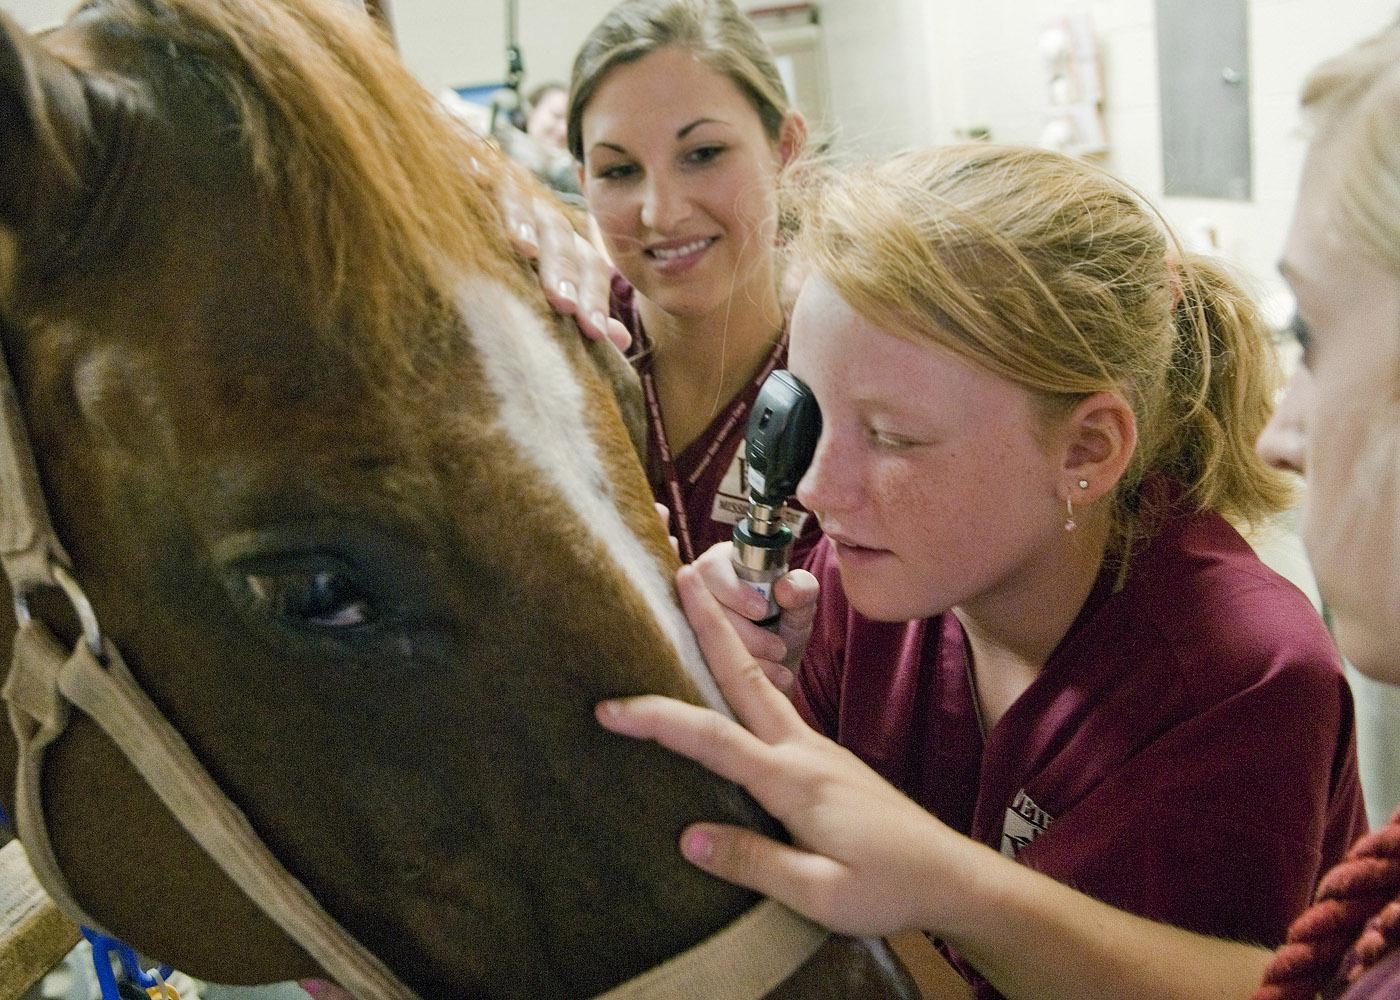 Mississippi State University College of Veterinary Medicine student Susannah Brent, left, shows vet camp participant Santana Shelton how to use an ophthalmoscope to examine a horse's eye. (Photo by MSU College of Veterinary Medicine/Tom Thompson)